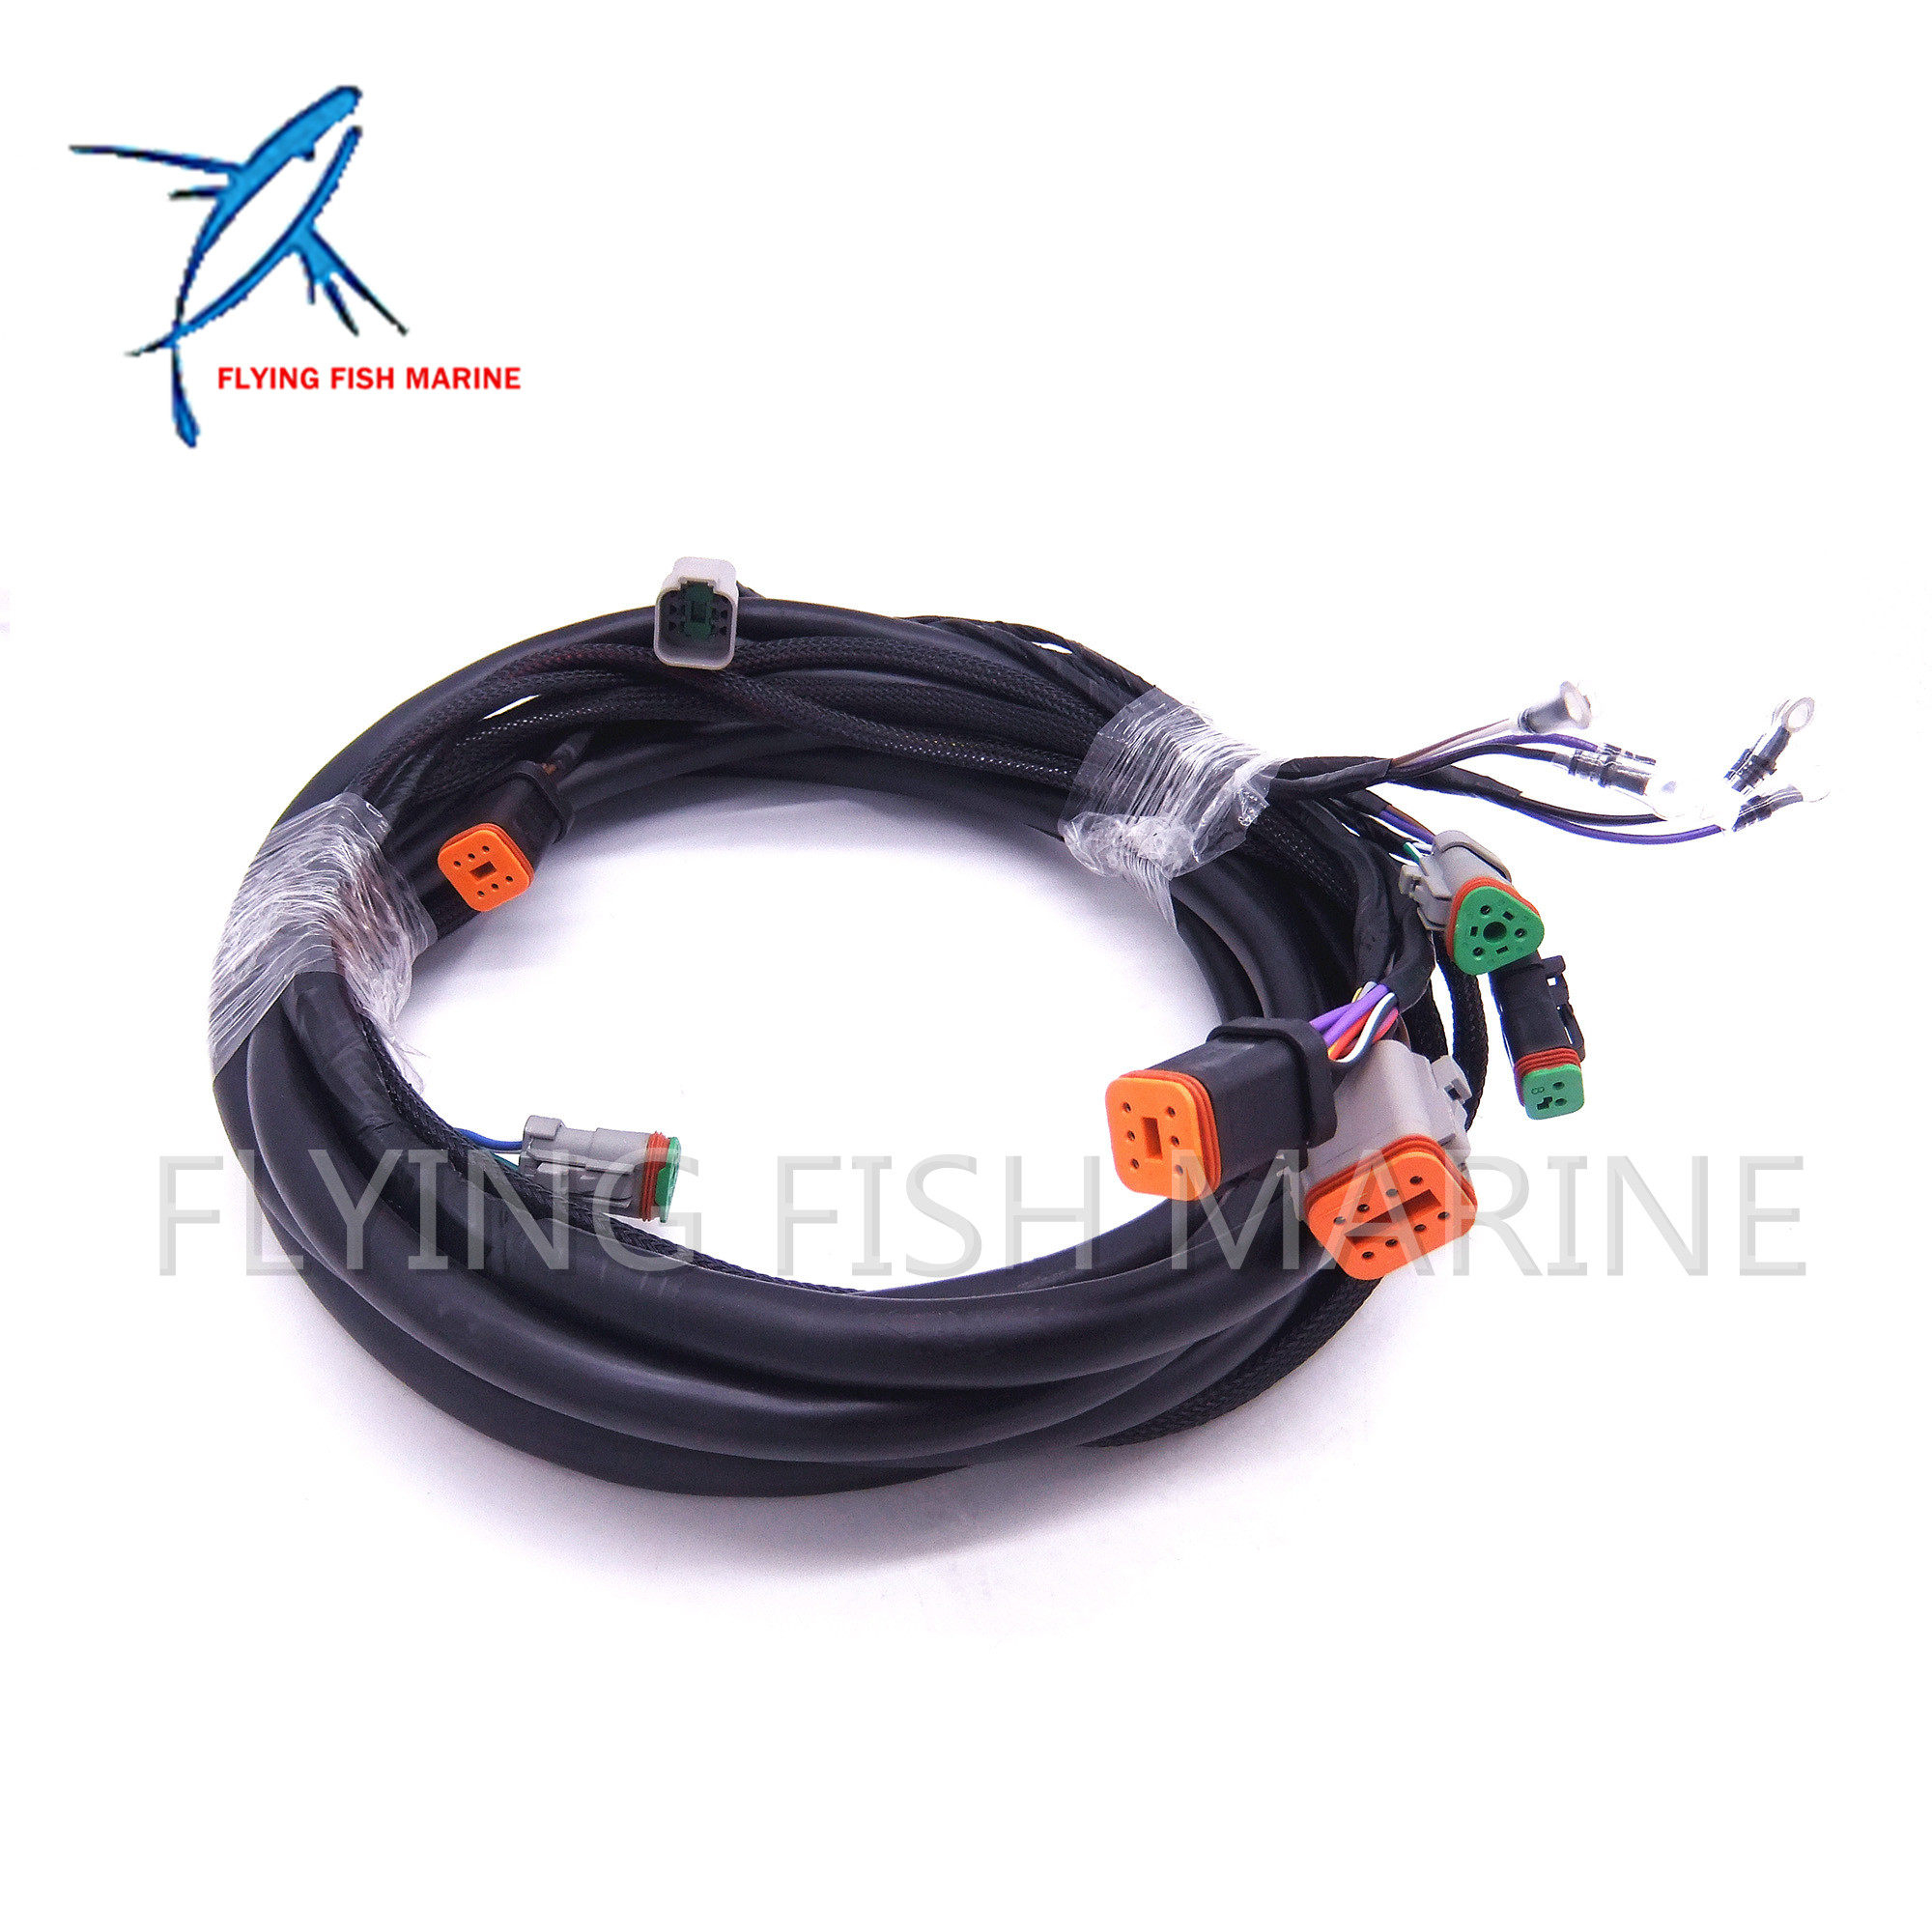 Outboard Motor 0176340 176340 SystemCheck 15ft Main Modular Ignition Wiring  Harness Cable for Evinrude Johnson OMC Free Shipping-in Boat Engine from ...